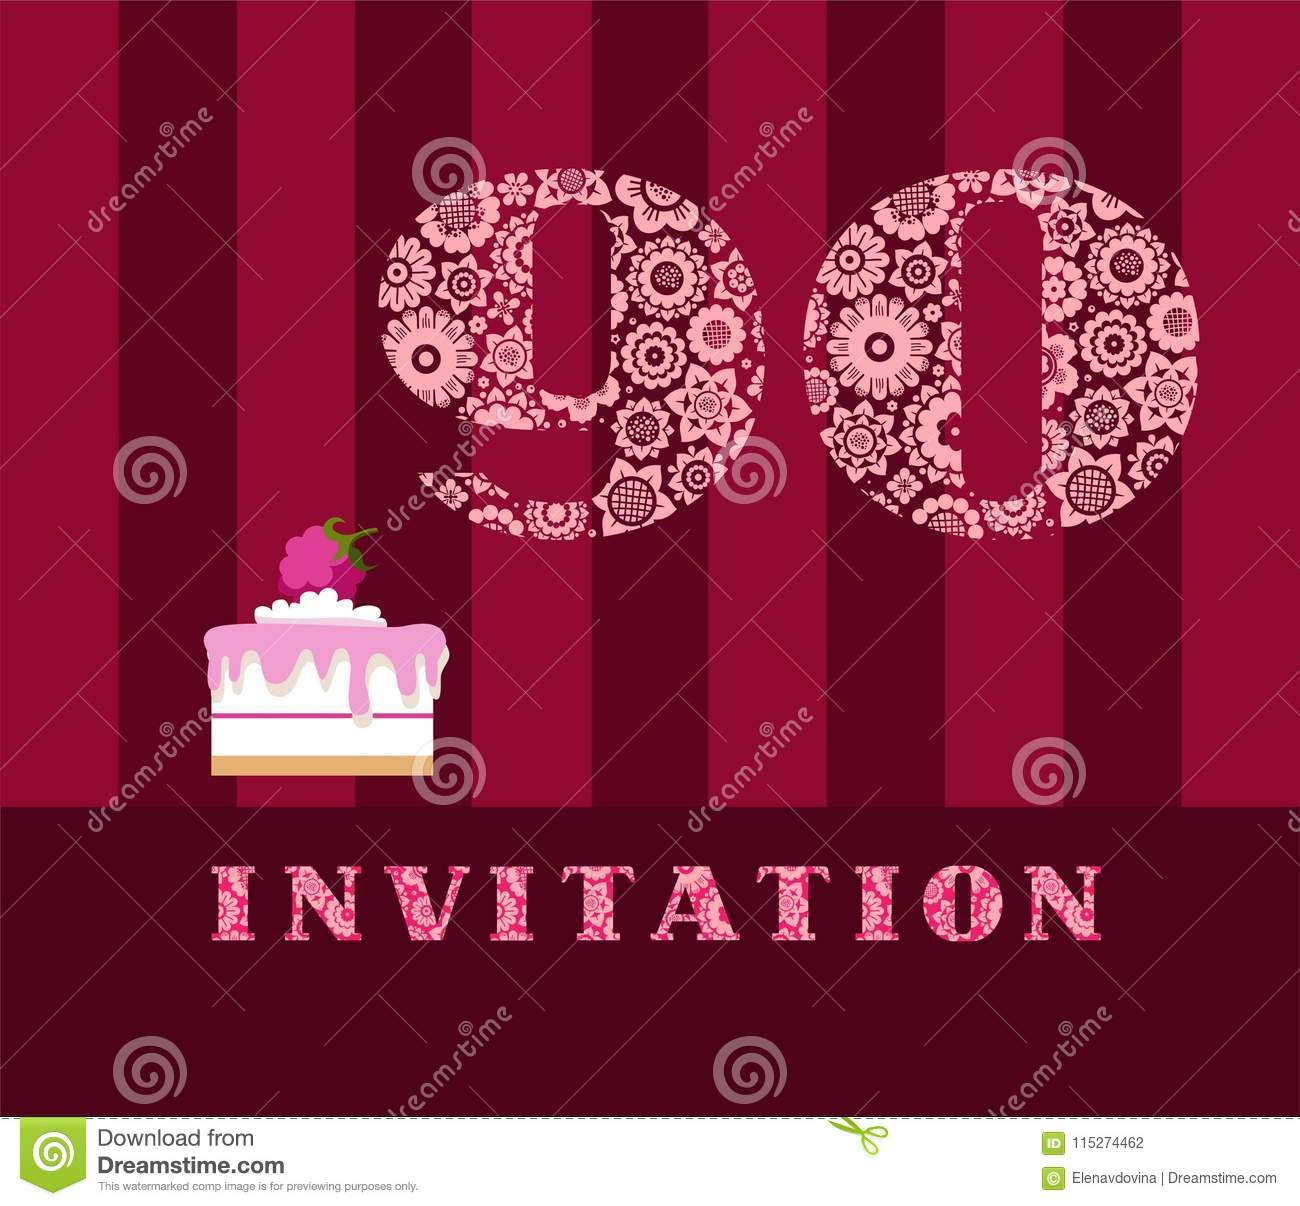 Invitation 90 Years Old Raspberry Pie Vector English